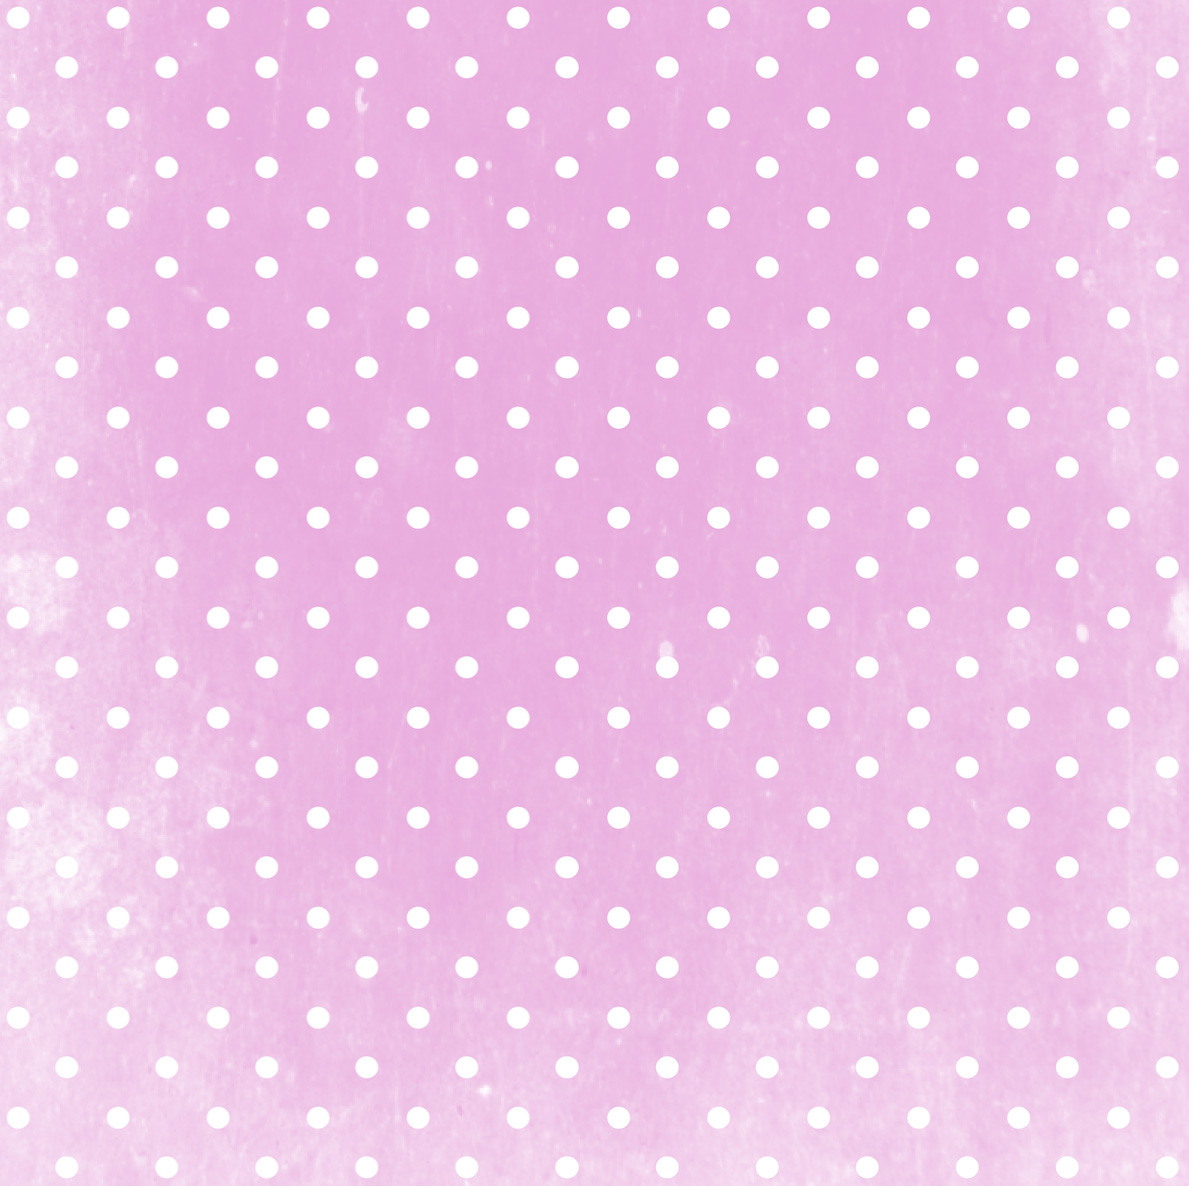 Free Digital Vintage Polka Dot Scrapbooking And Fun Paper No2 - Free Printable Pink Polka Dot Paper